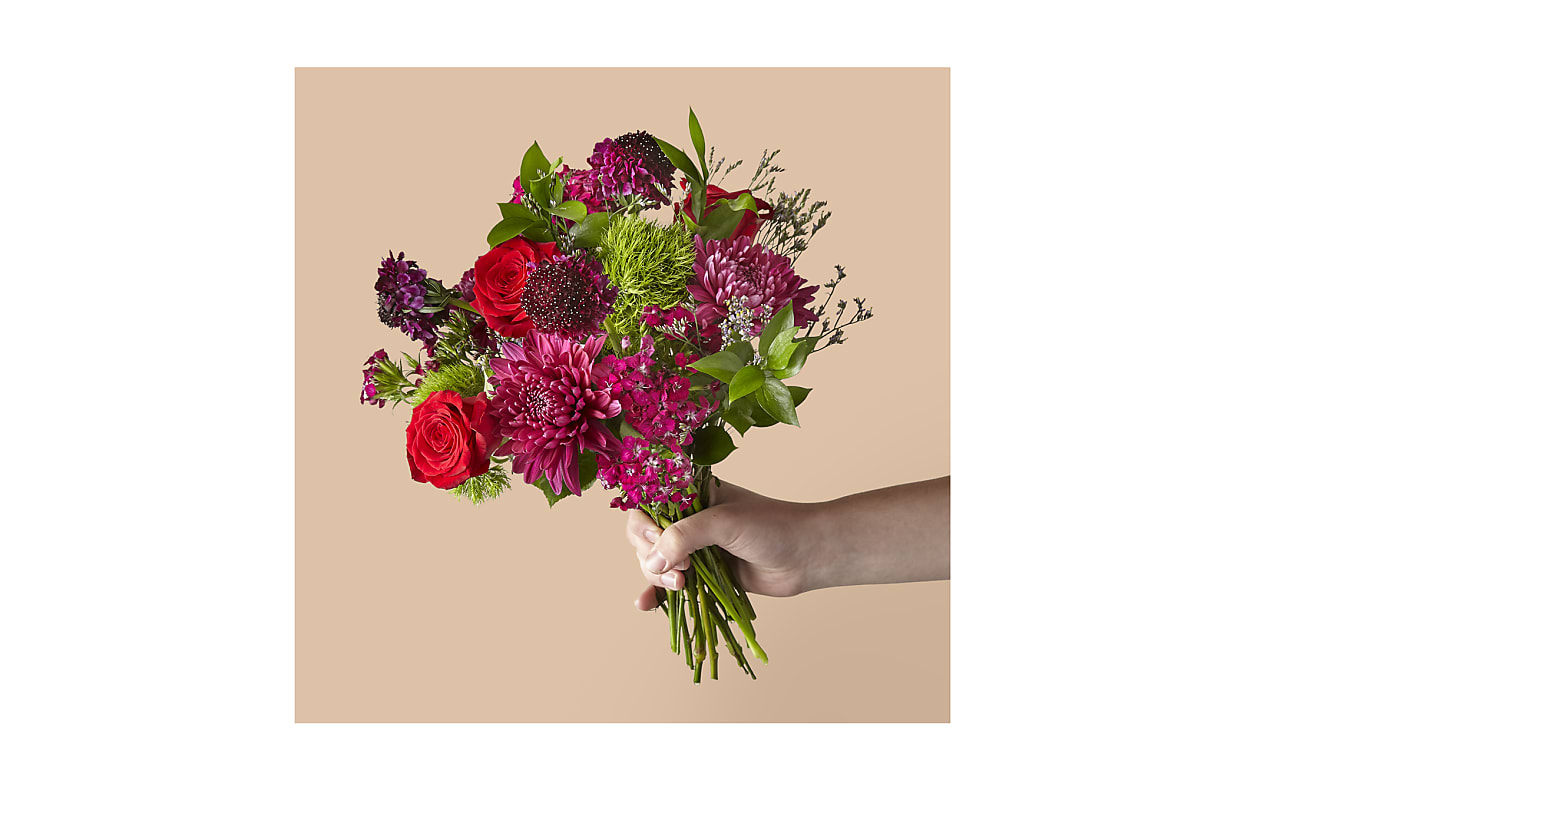 The Faith Bouquet with St. Jude - Image 1 Of 2